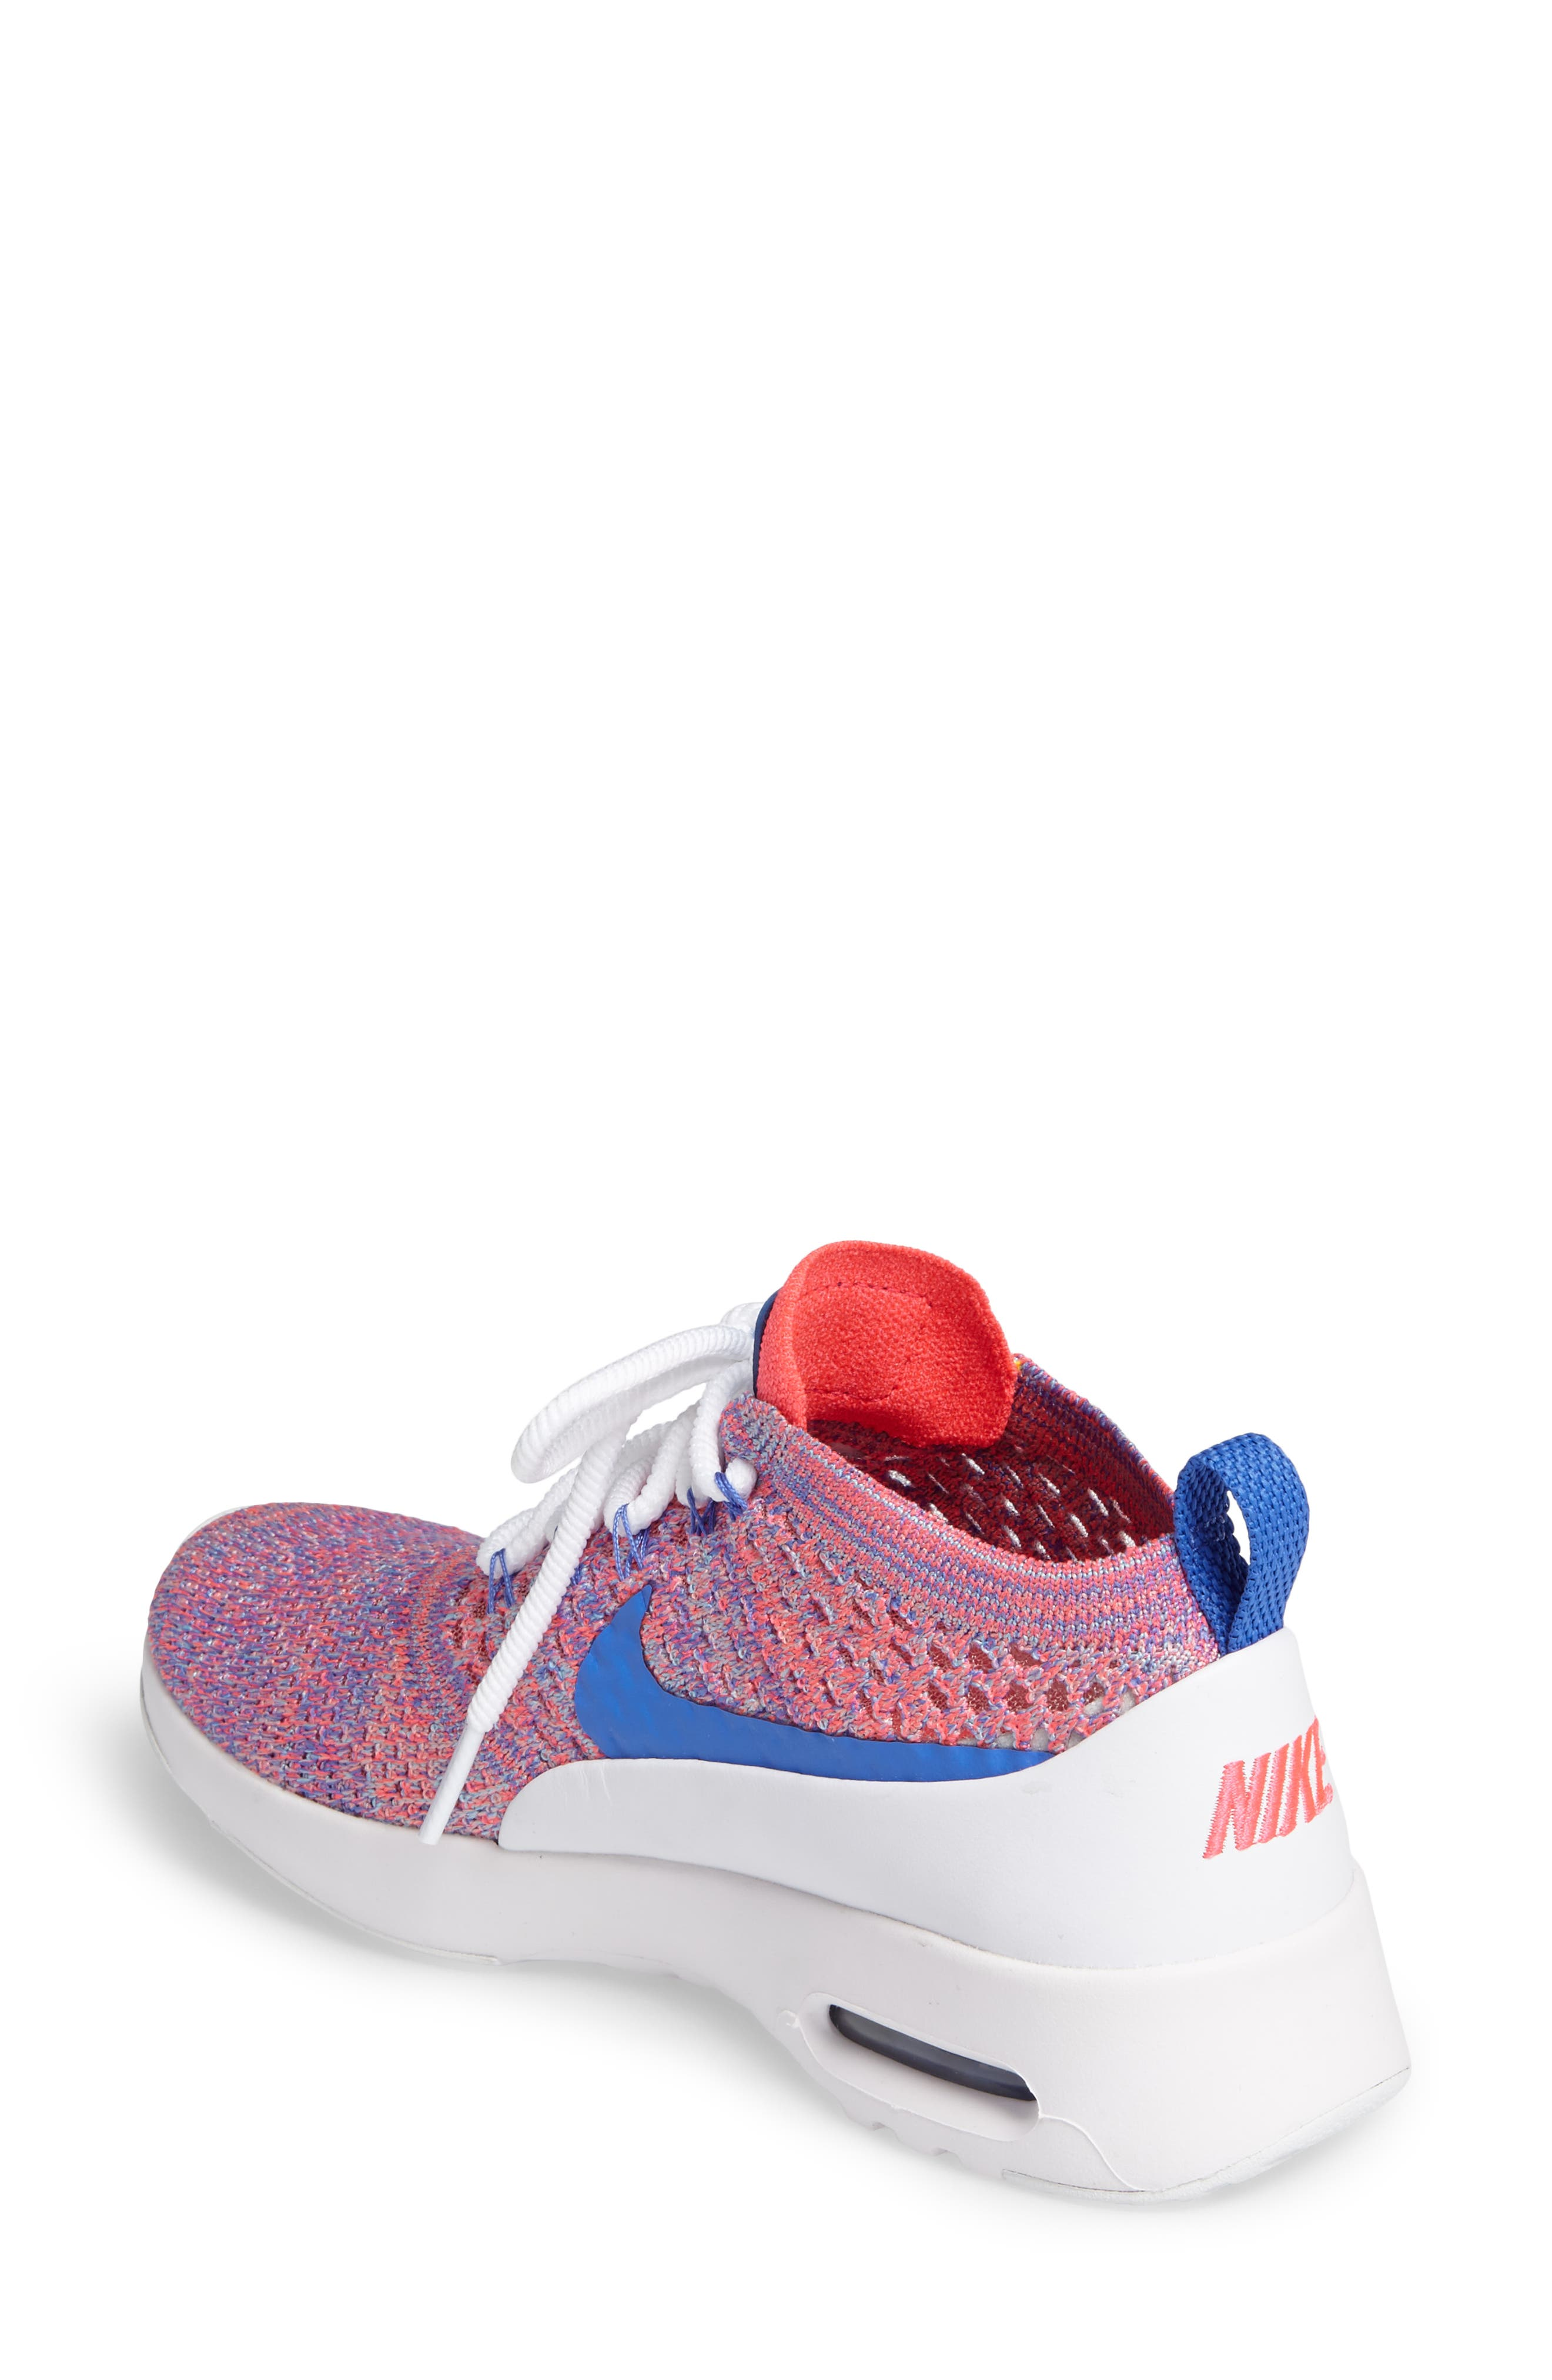 Air Max Thea Ultra Flyknit Sneaker,                             Alternate thumbnail 24, color,